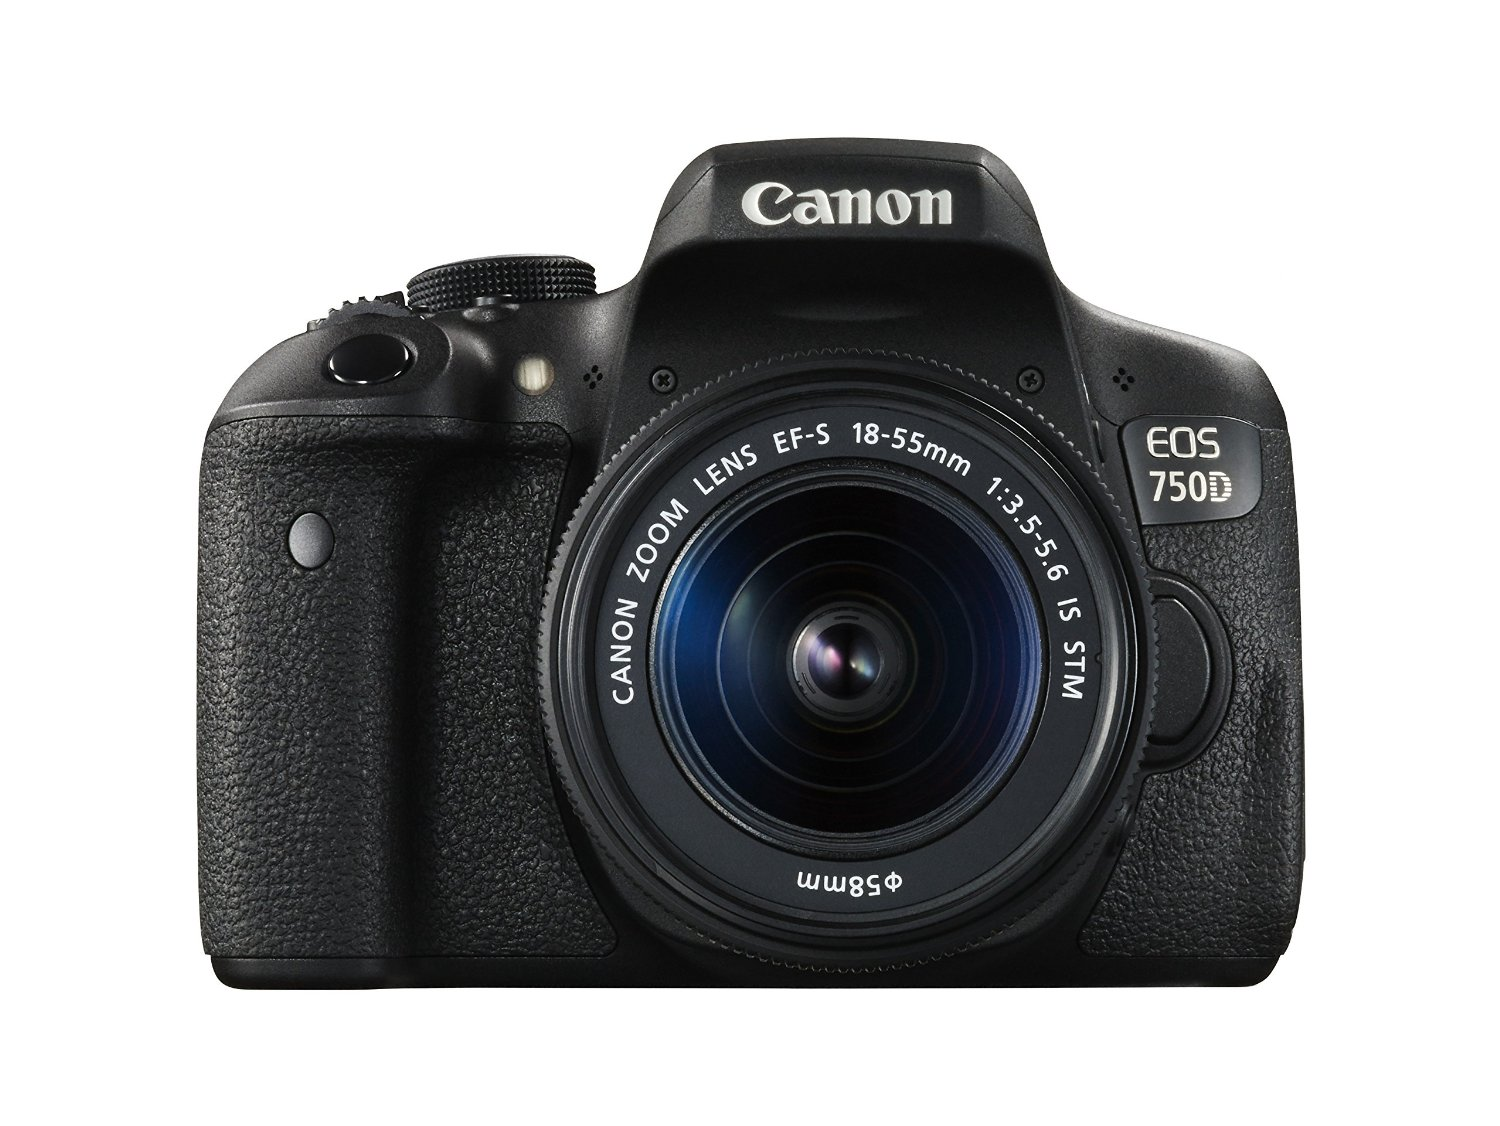 Image of Canon EOS 750D Kit with 18-55mm IS STM Digital SLR Camera